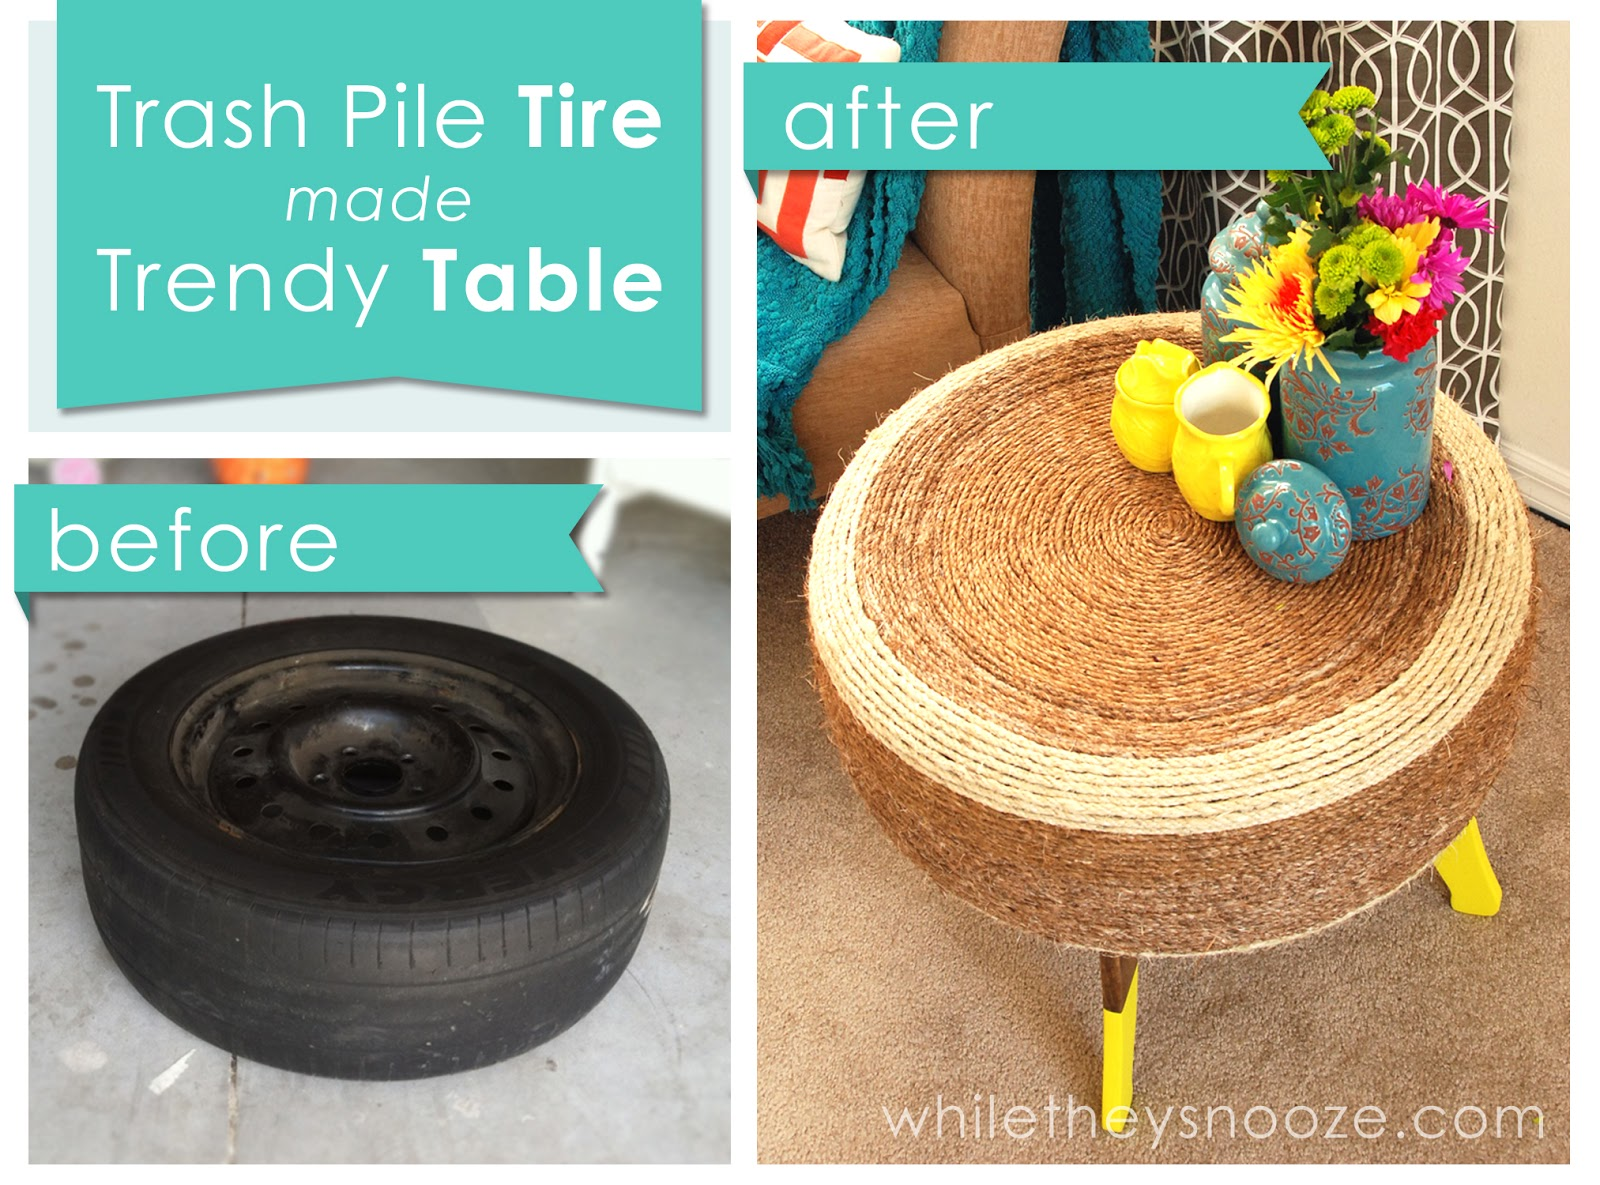 Trendy tire table while they snooze